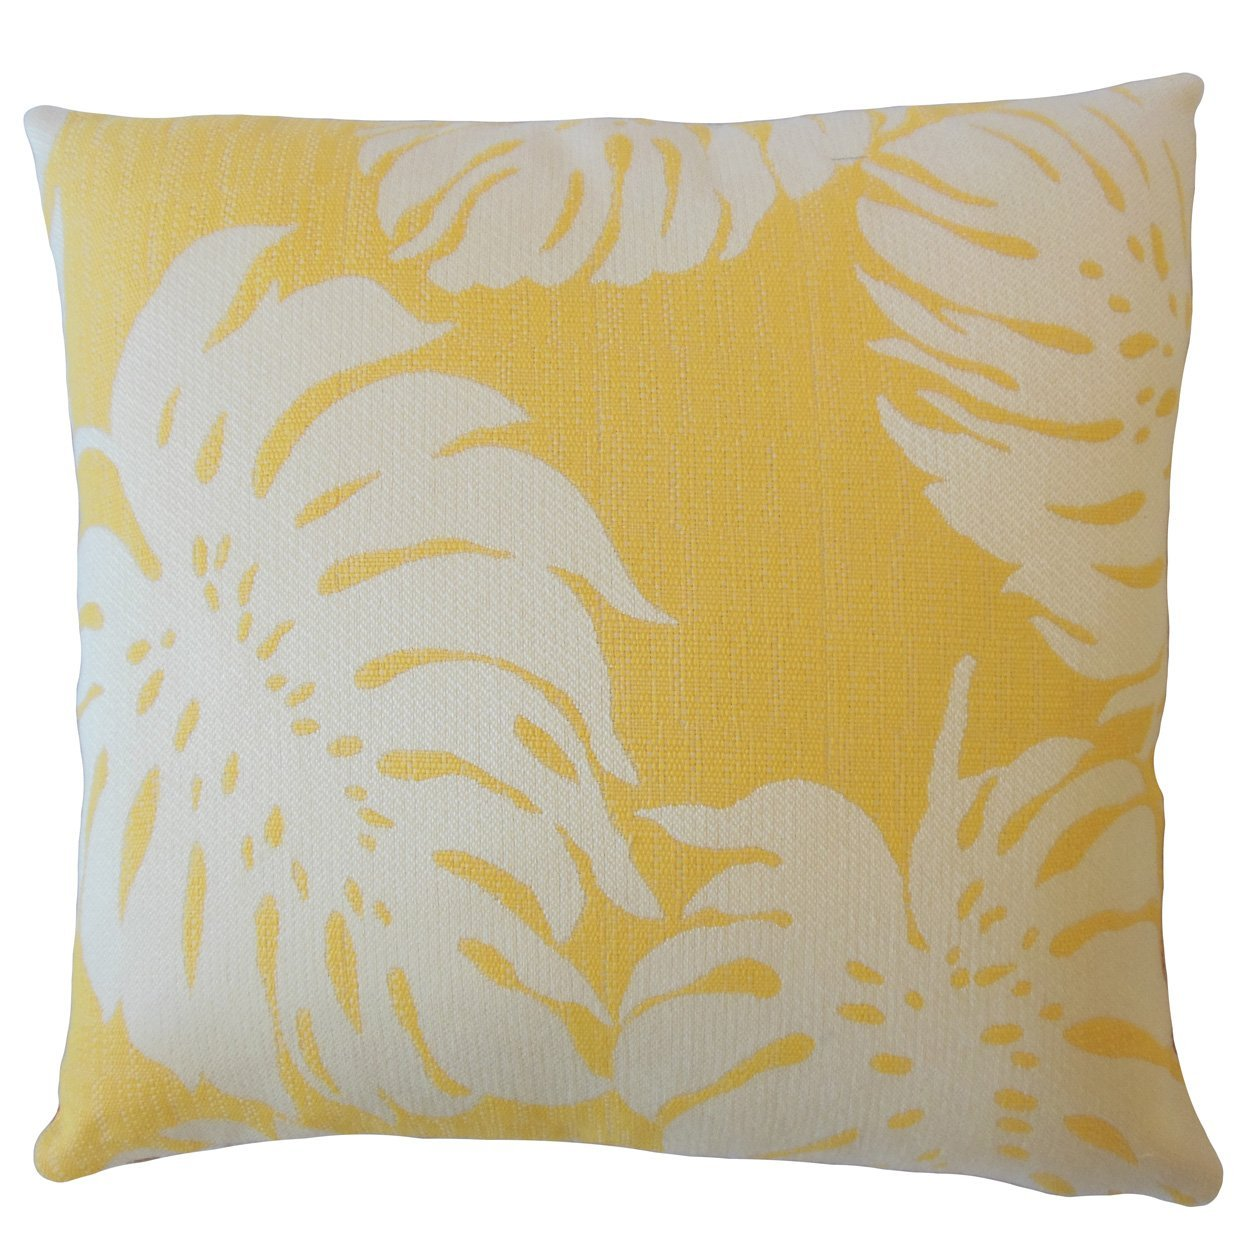 Roberts Throw Pillow Cover